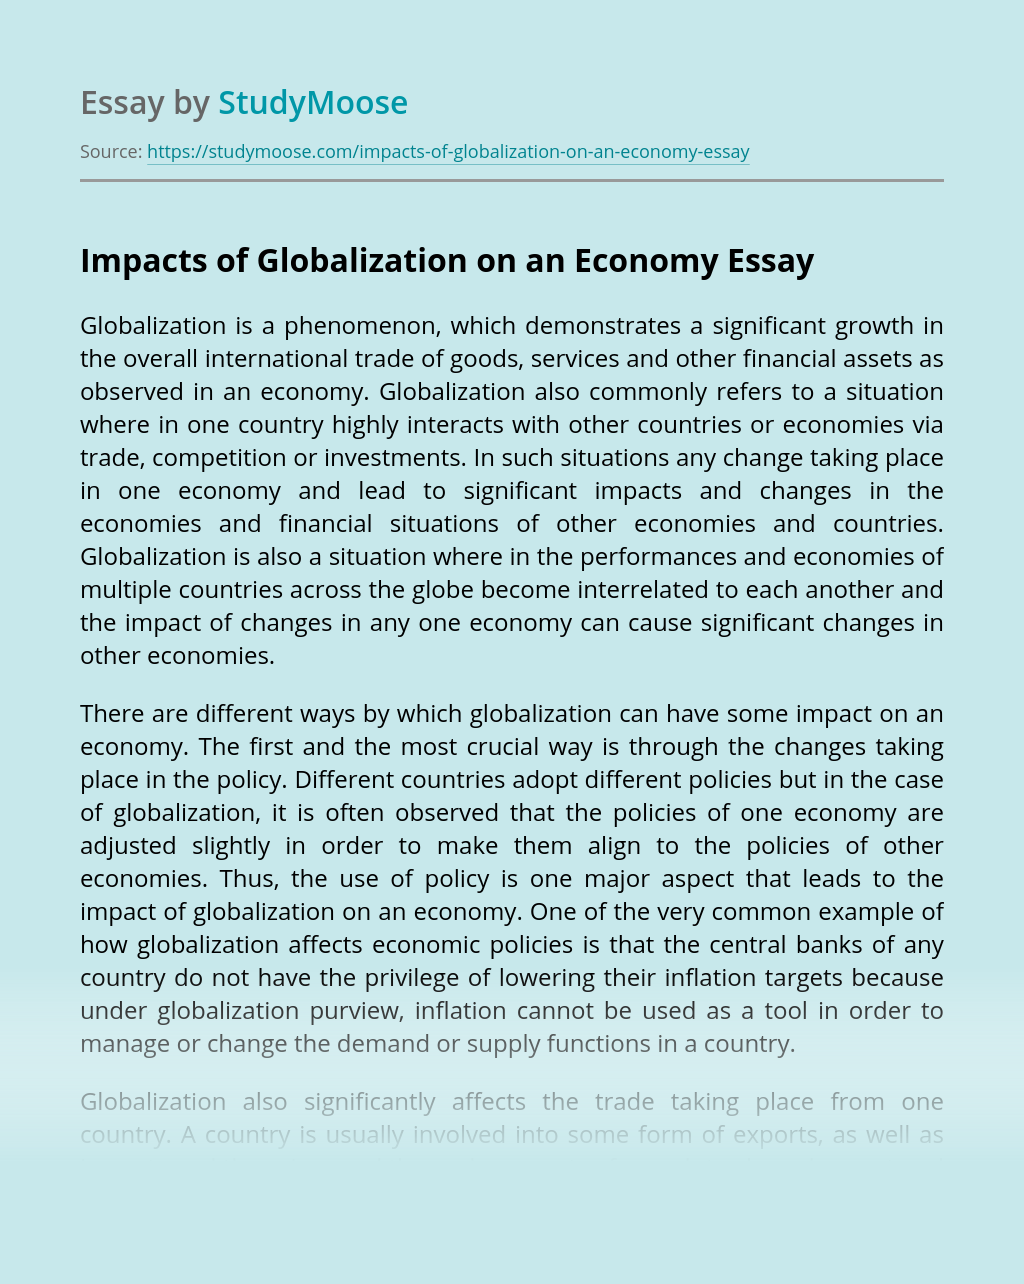 Impacts of Globalization on an Economy